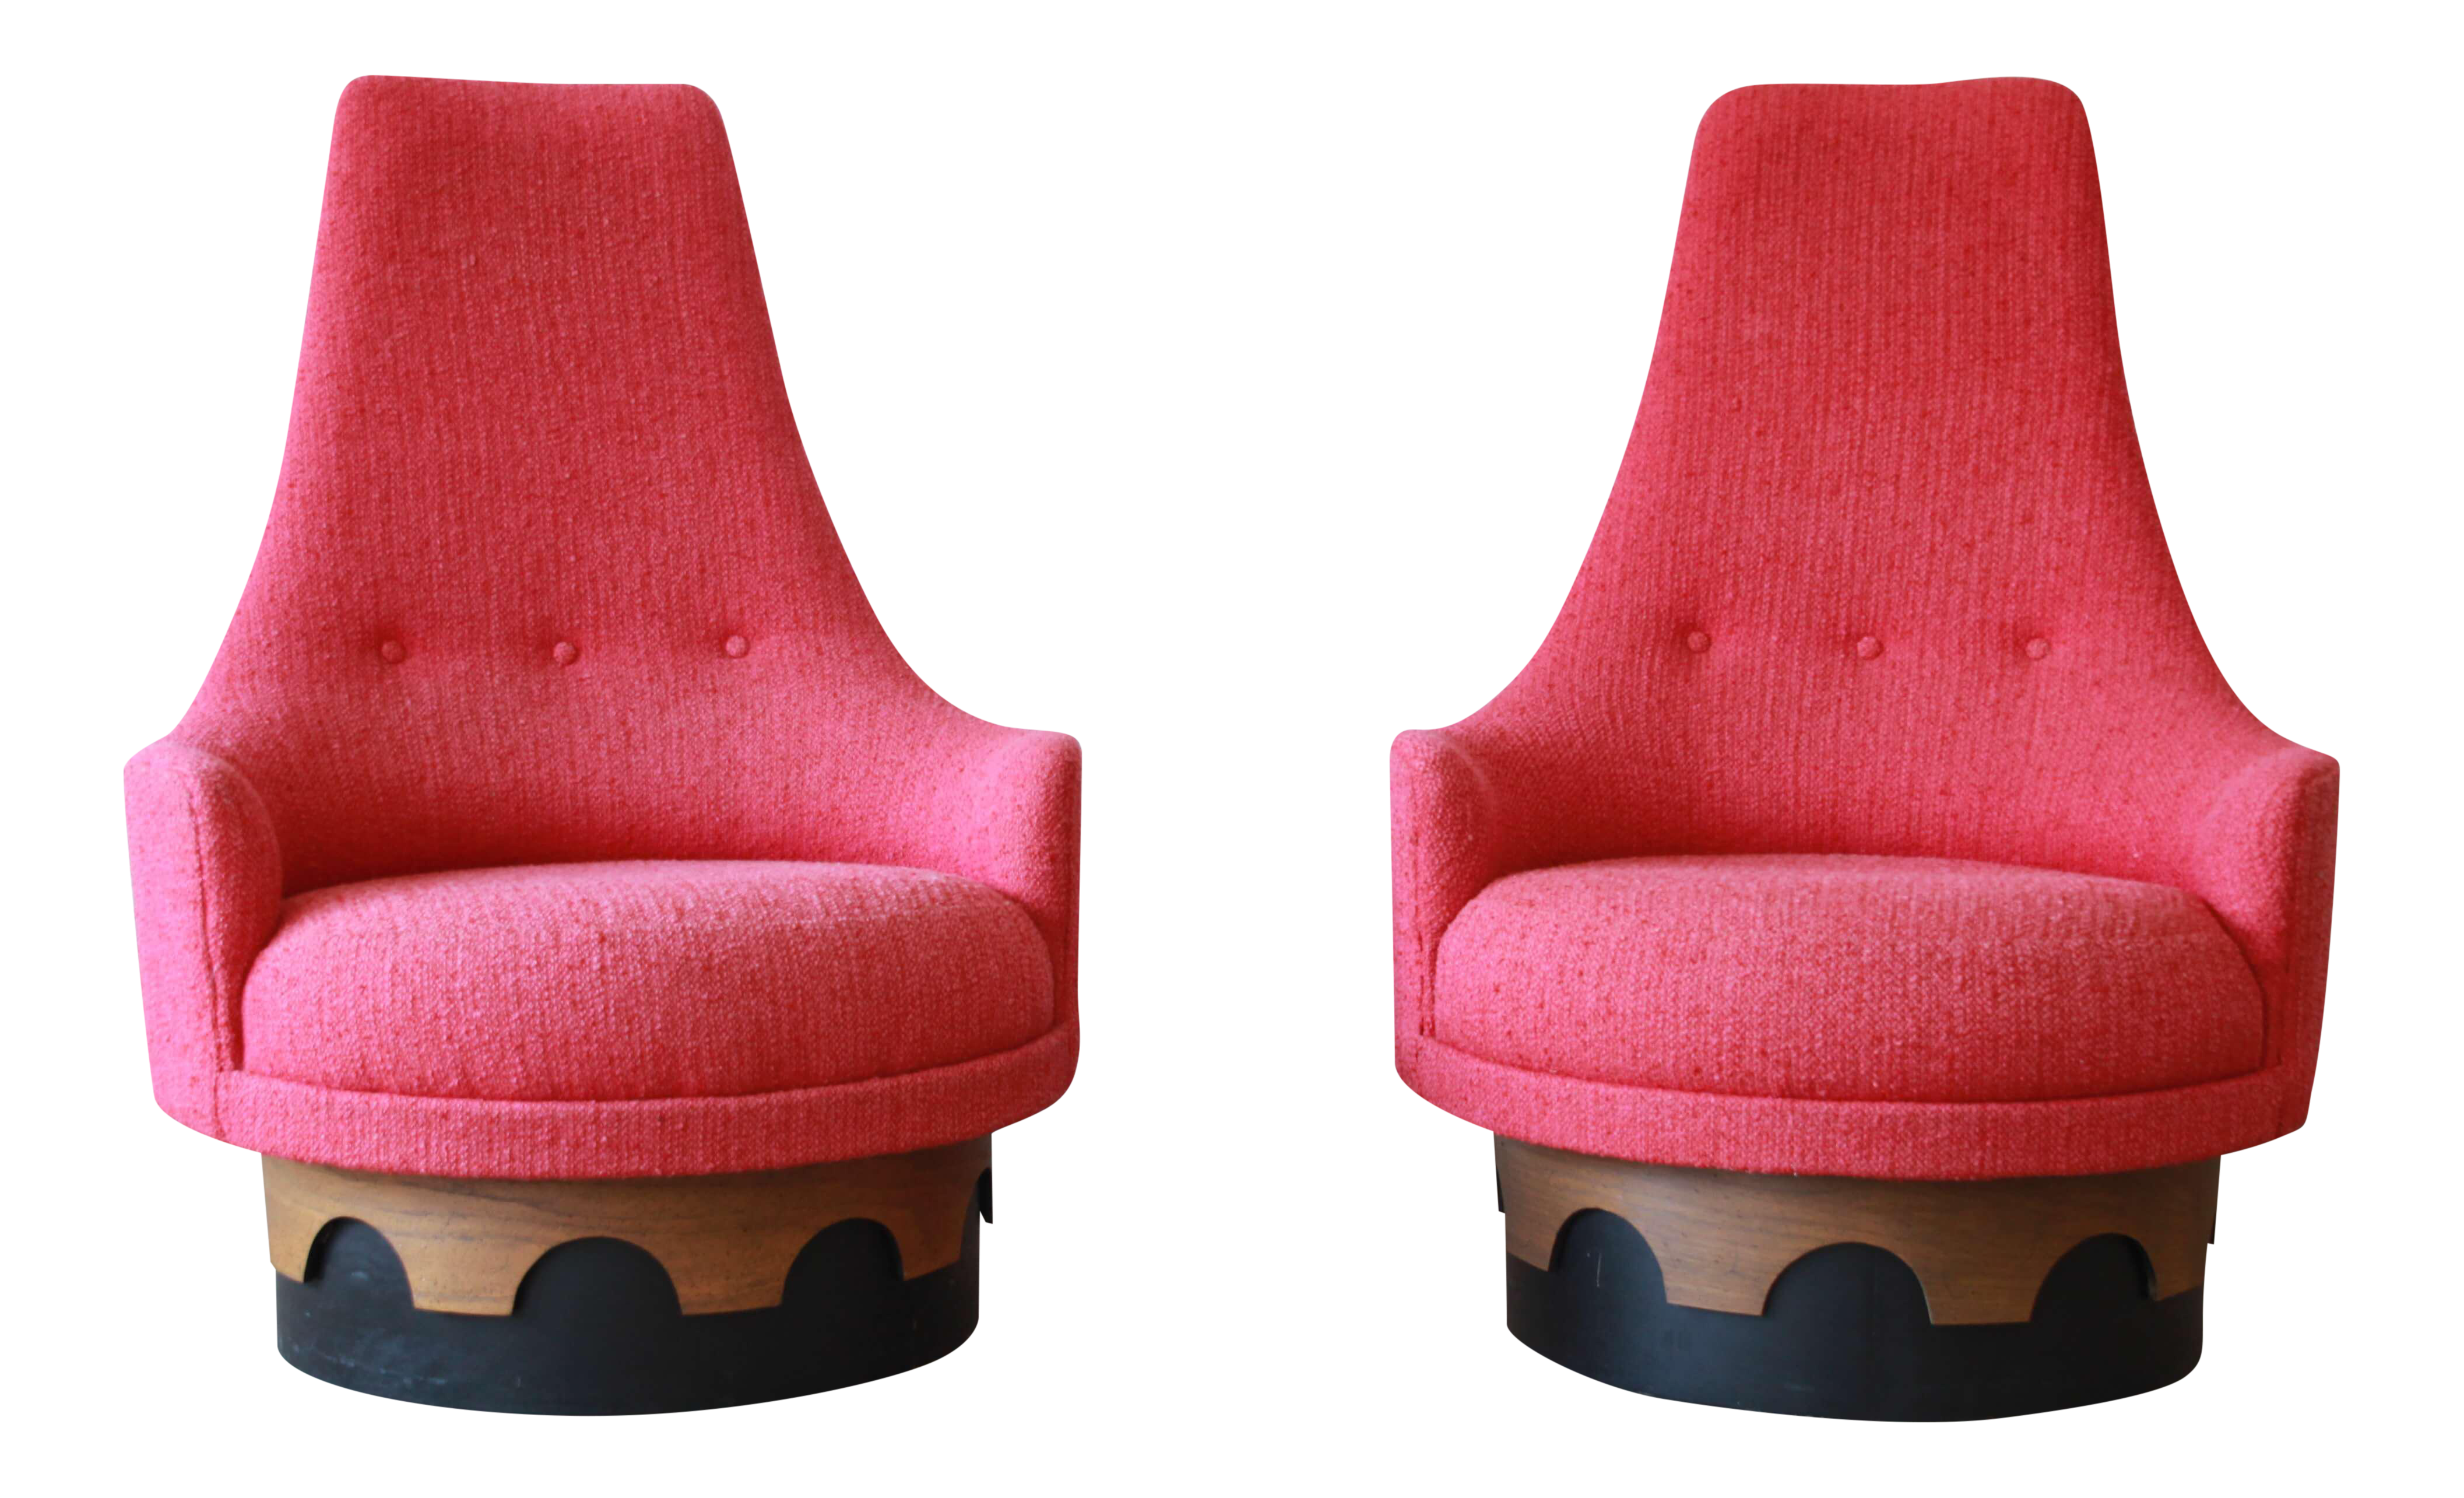 1960s Vintage Adrian Pearsall High Back Swivel Chairs   A Pair | Chairish